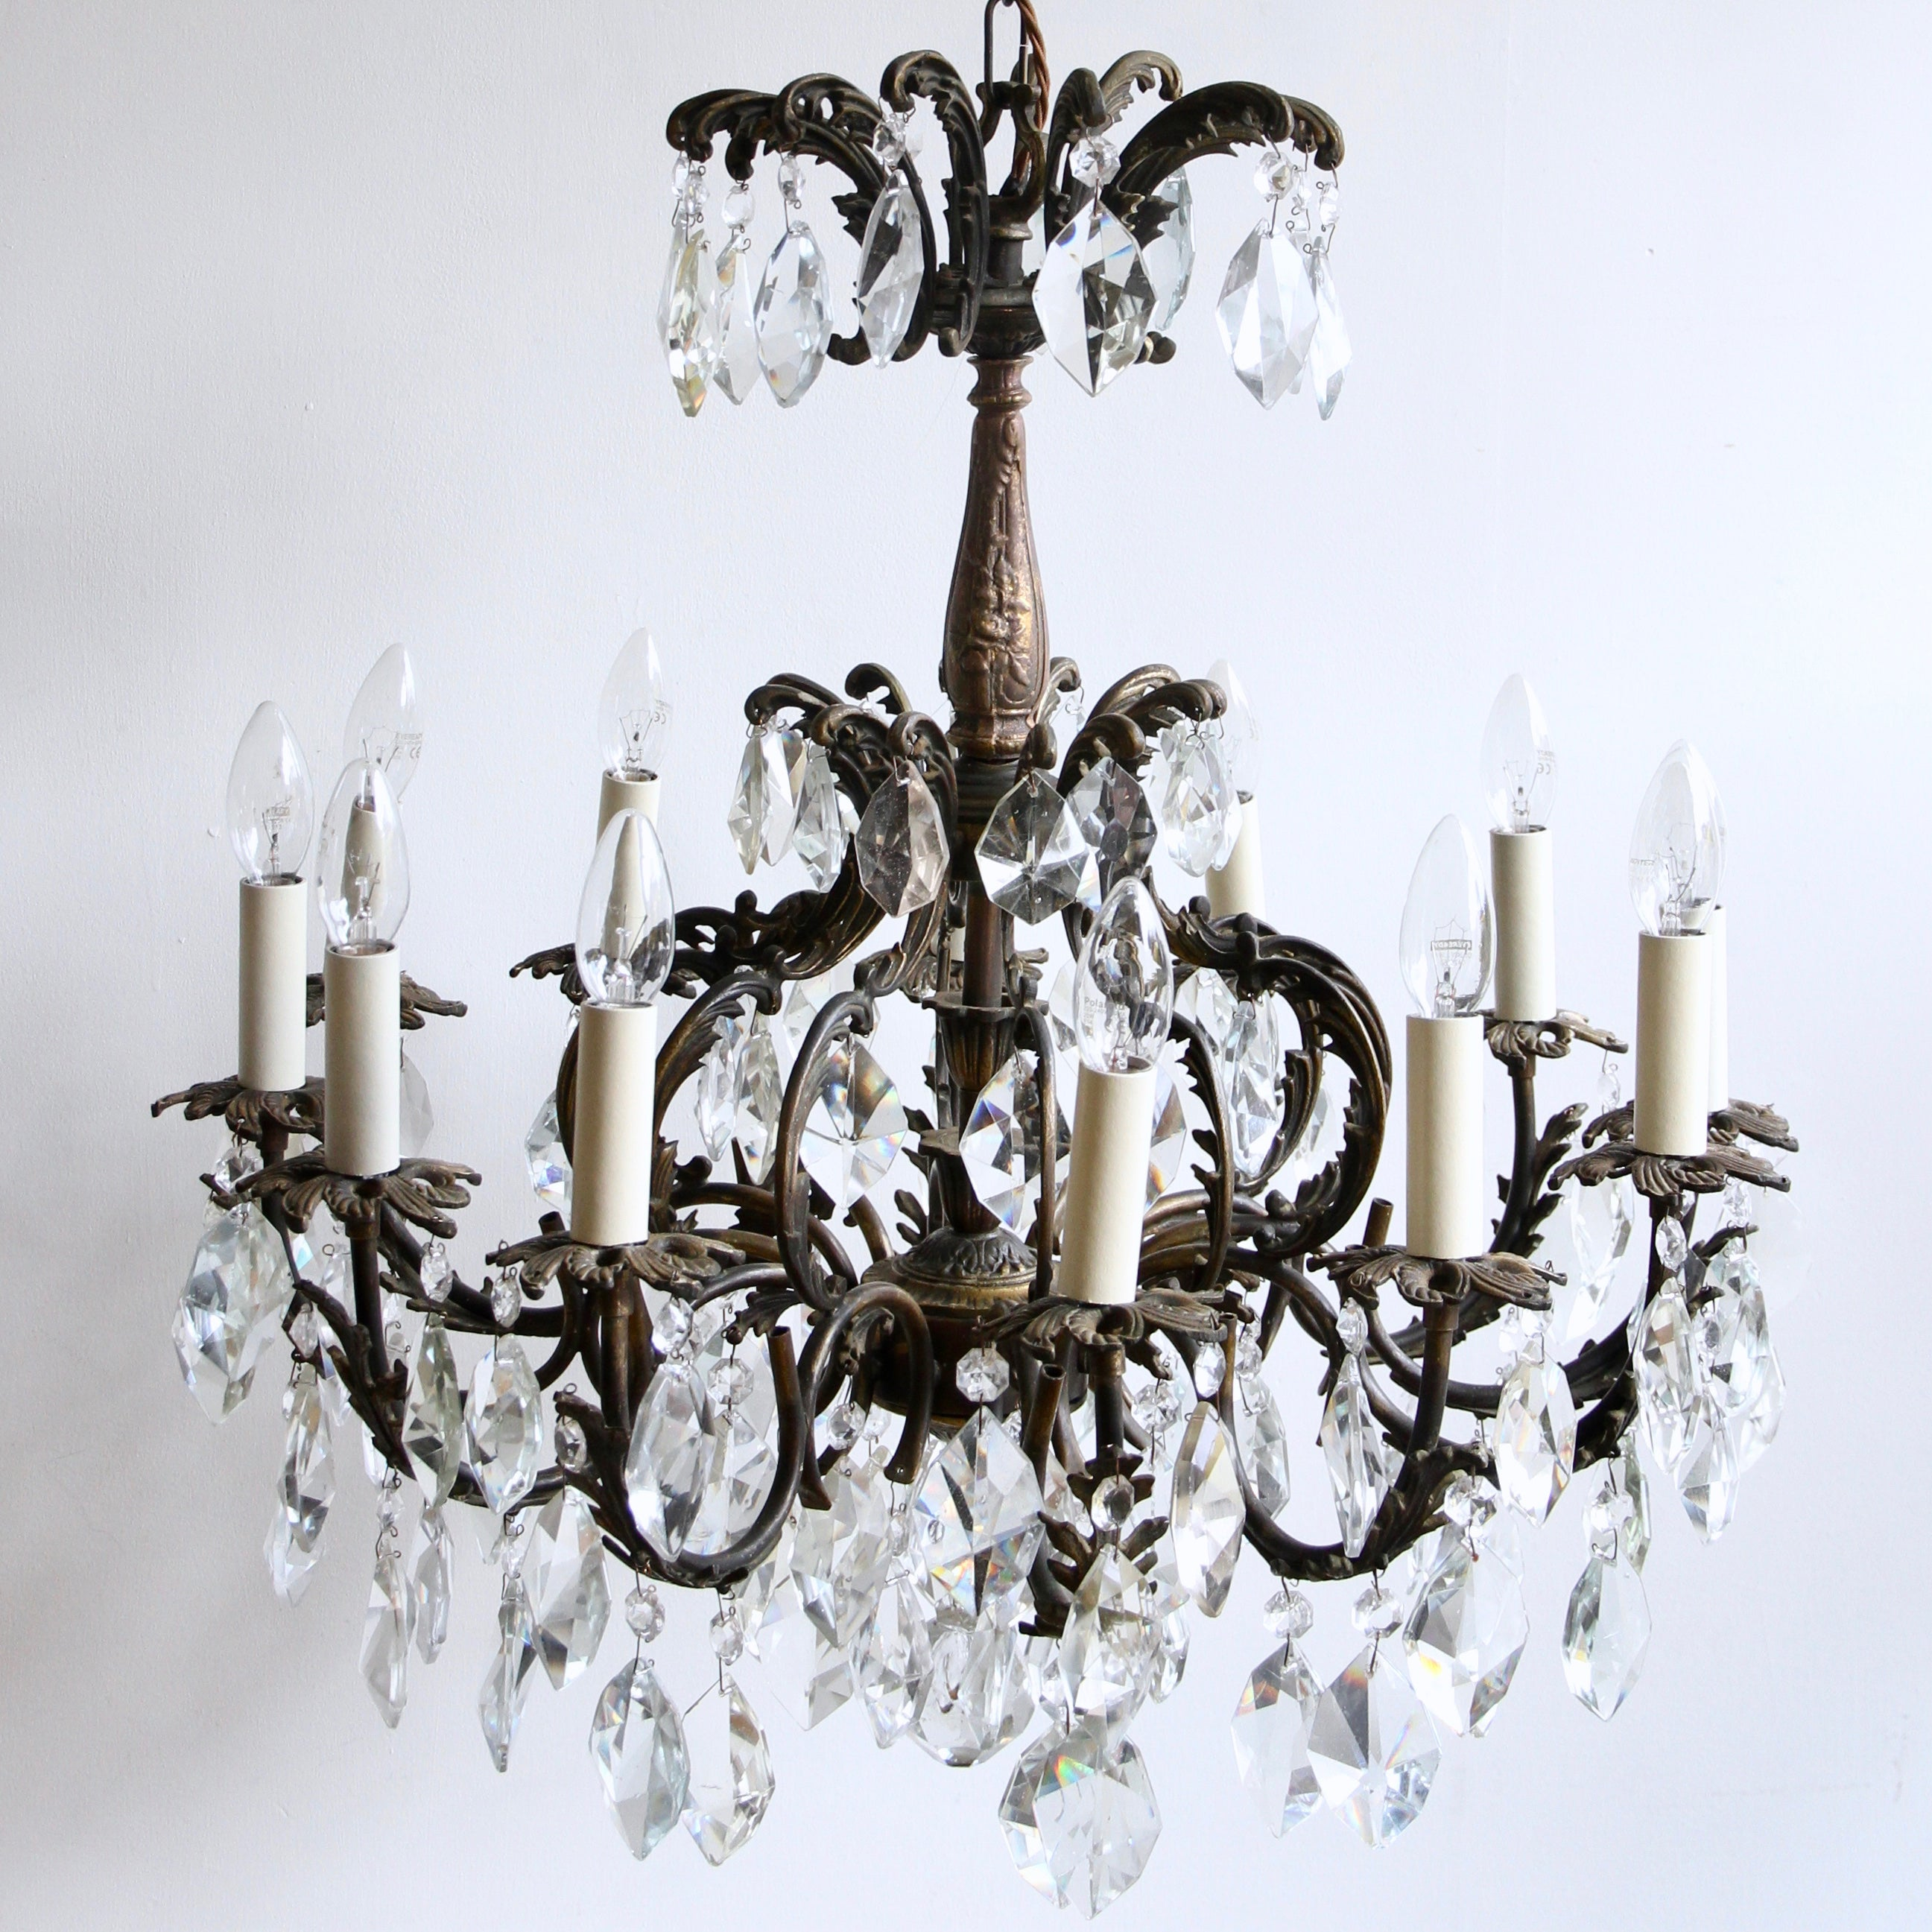 Early 1900s french ornate brass chandelier with cut crystal iceberg early 1900s french ornate brass chandelier with cut crystal iceberg drops for sale at 1stdibs aloadofball Choice Image